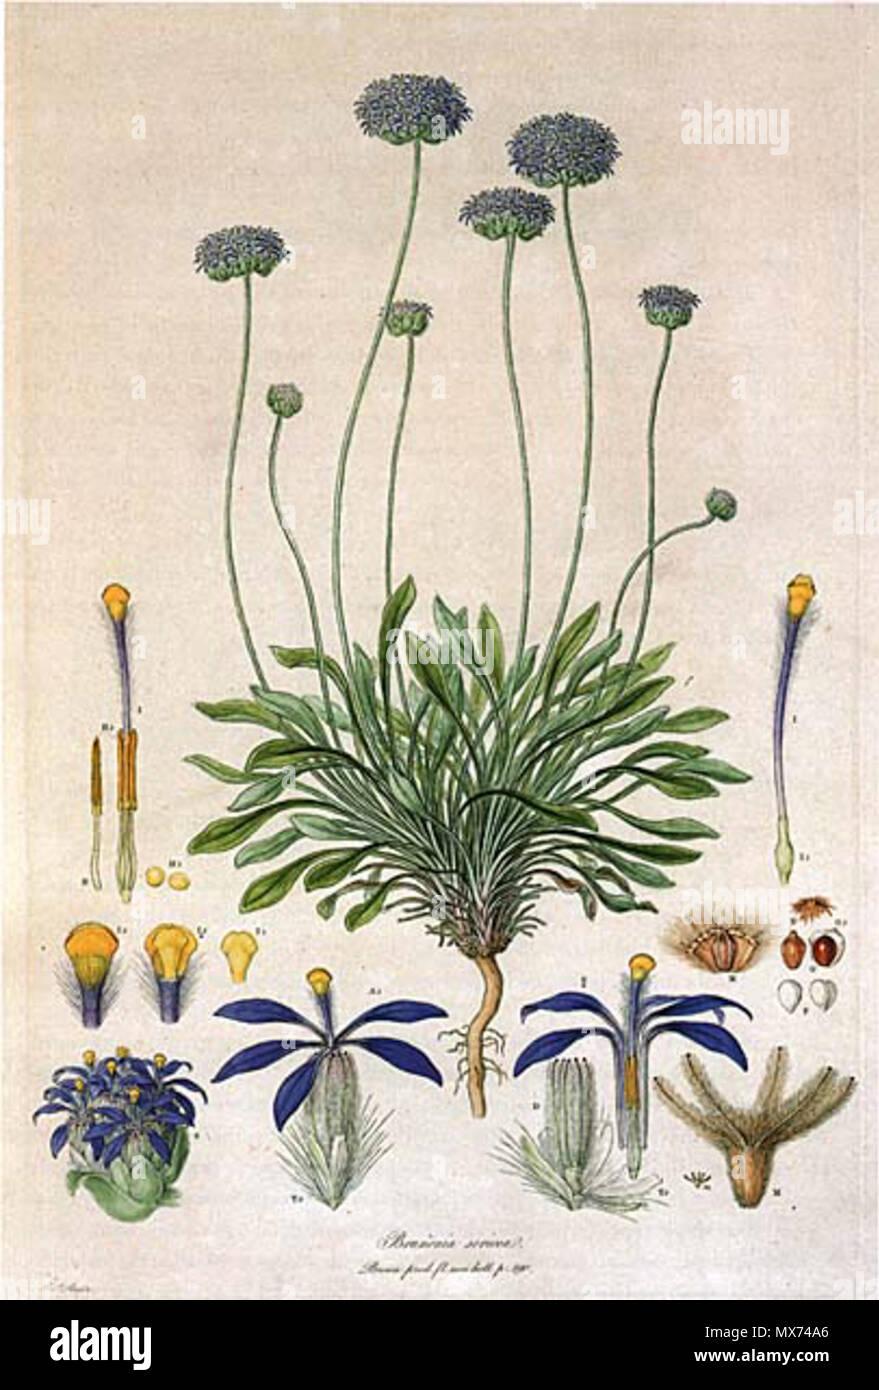 . This is a scan of Plate 10 from Ferdinand Bauer's Illustrationes Florae Novae Hollandiae. The plant featured is Brunonia australis (Blue Pincushion), then known as Brunonia sericea. early 19th century. Ferdinand Bauer (1760–1826) 103 Brunonia australis-Bauer Stock Photo